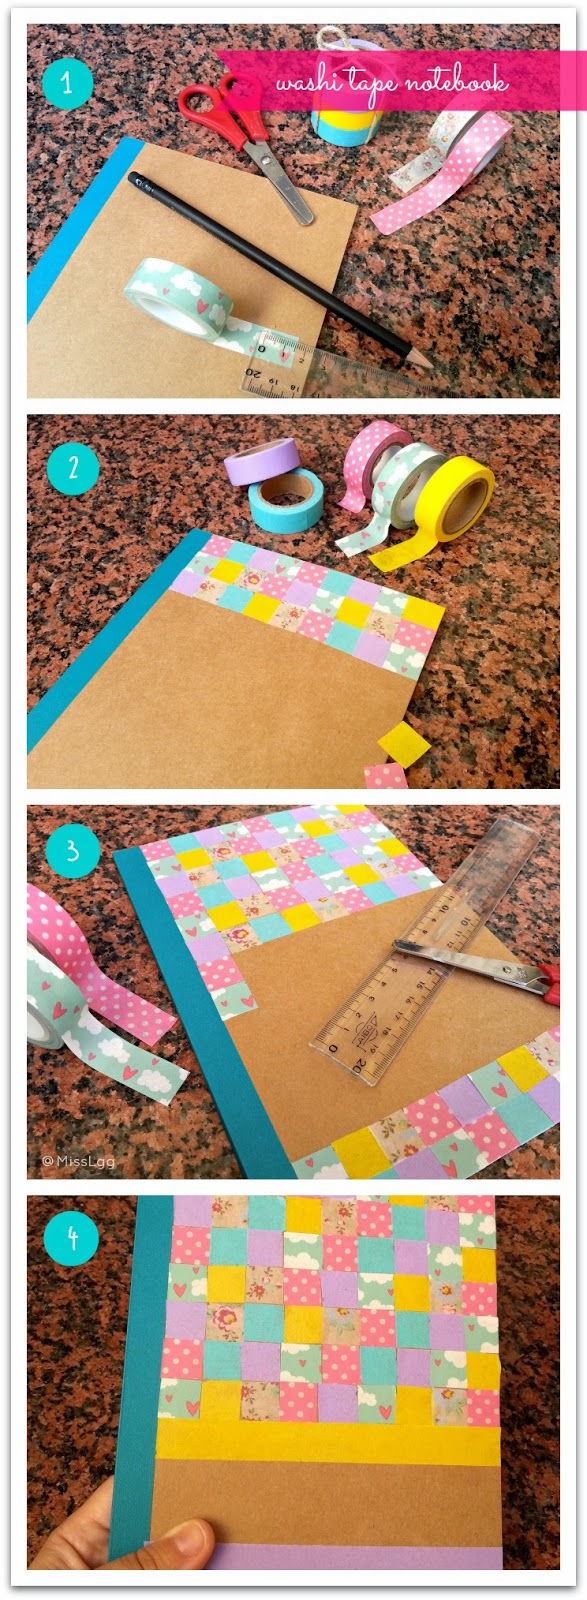 washi tape notebook patchwork libreta washi tape DIY pasos